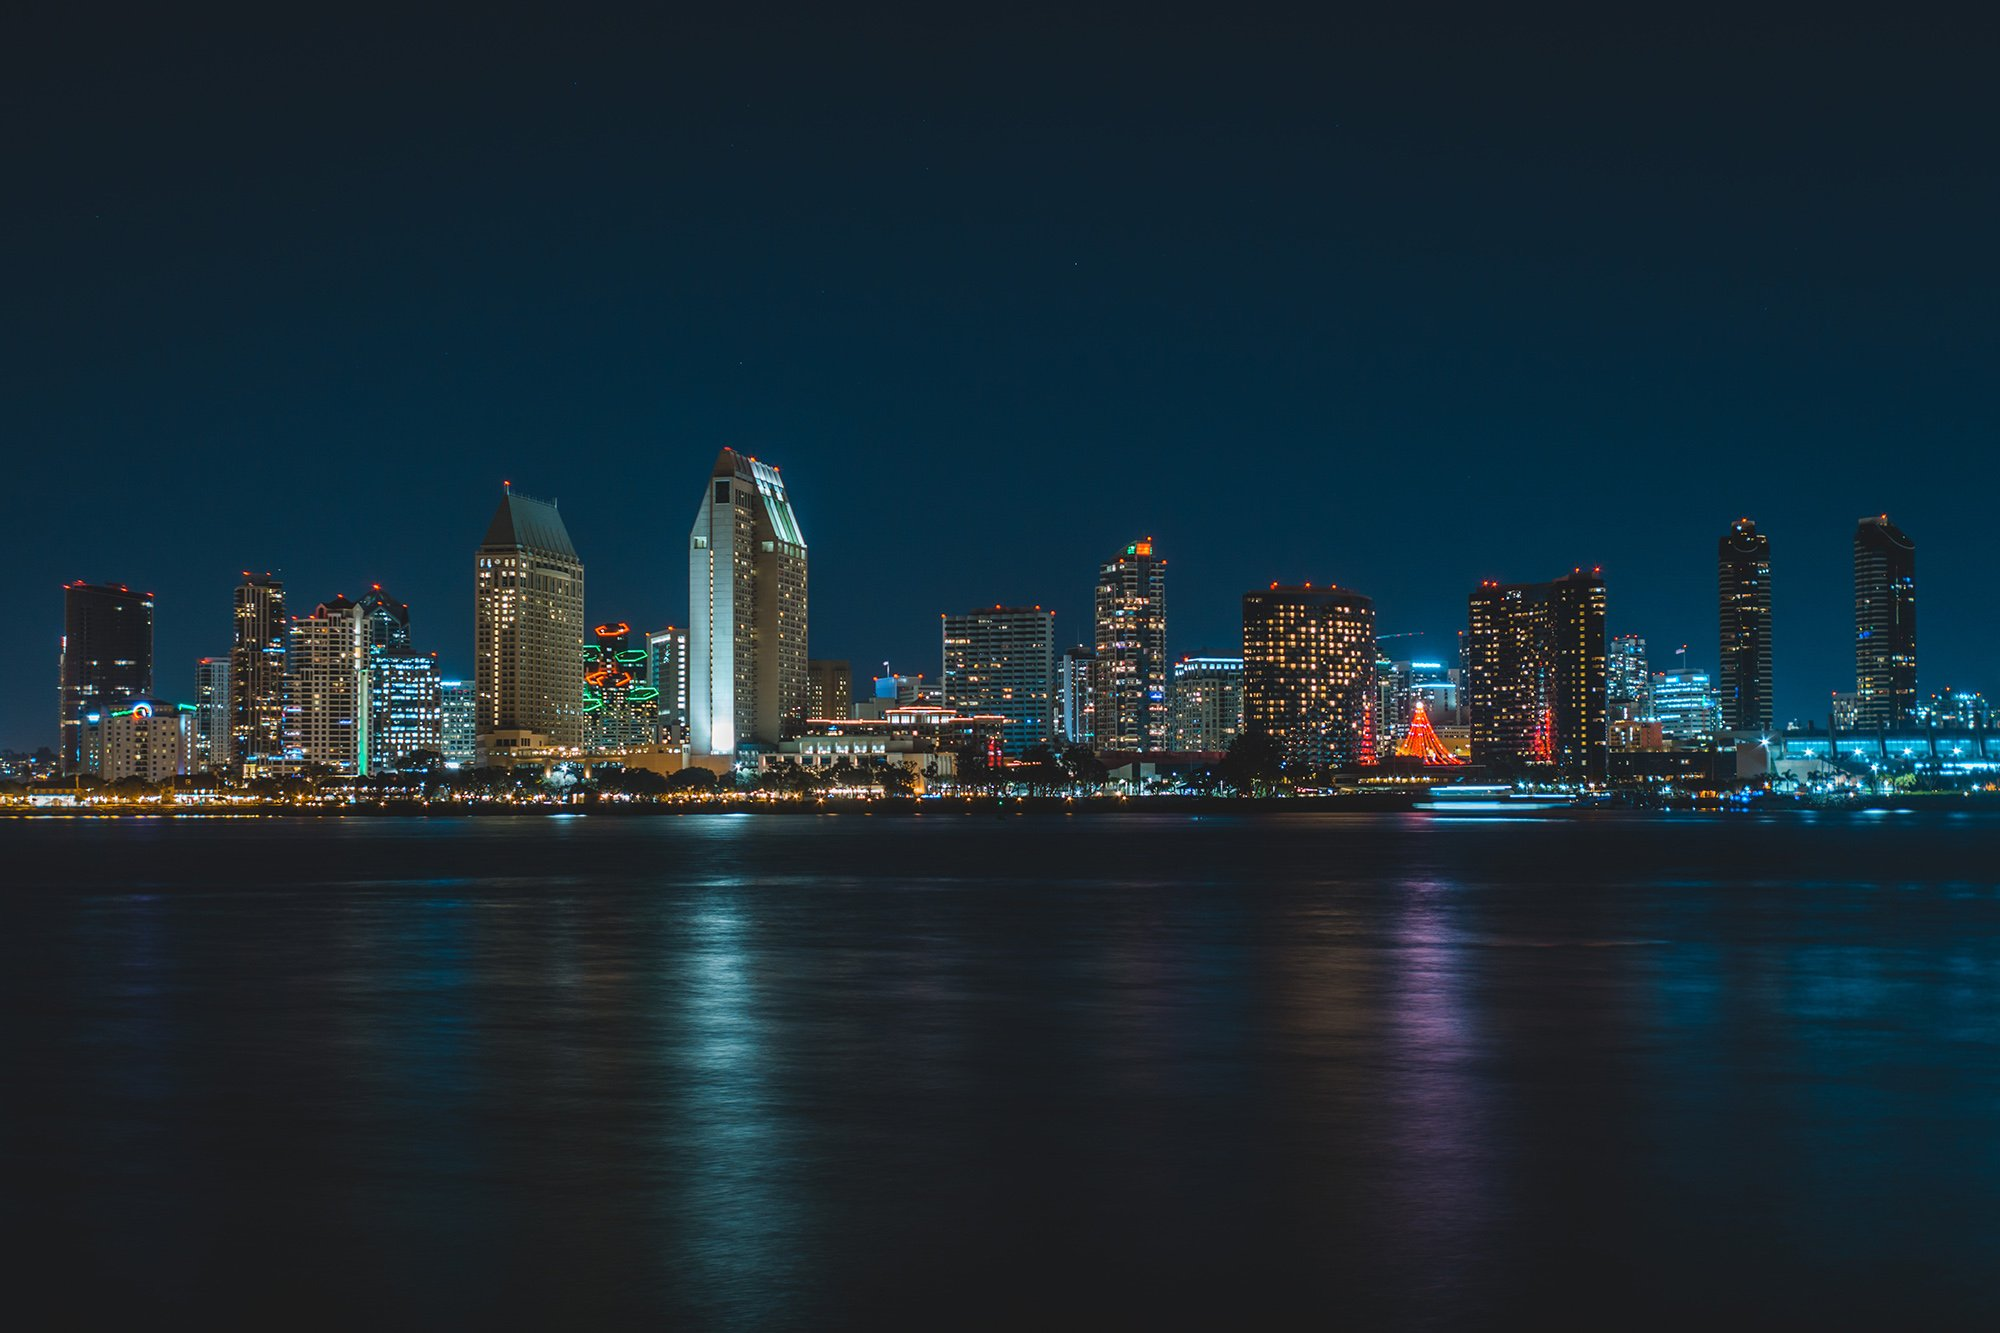 San Diego Virtual Tour: 17 Museums & Attractions You Can Visit from Home